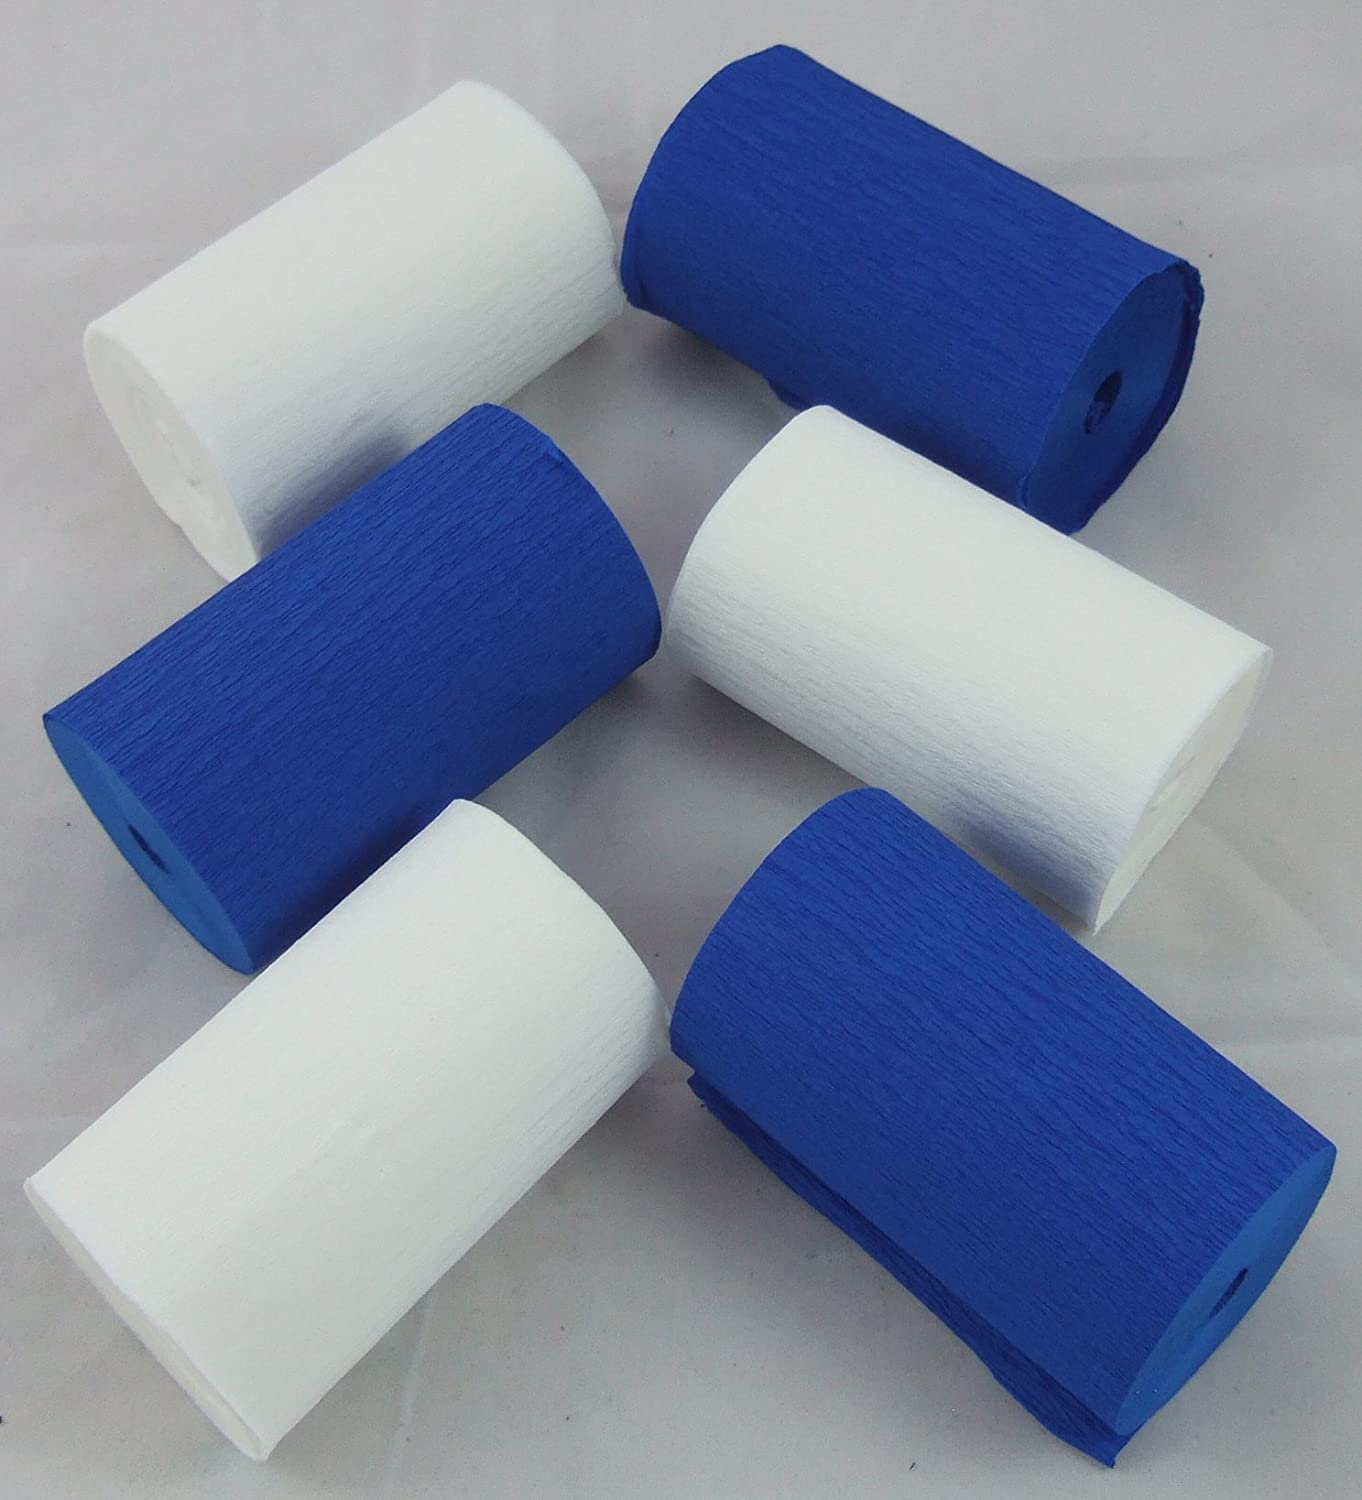 great favourite with schools and the craft industry 3 White 3 Dark Blue Crepe EXTRA WIDE Paper Streamers 83mm x 10metres Many uses as decorations marketing tools